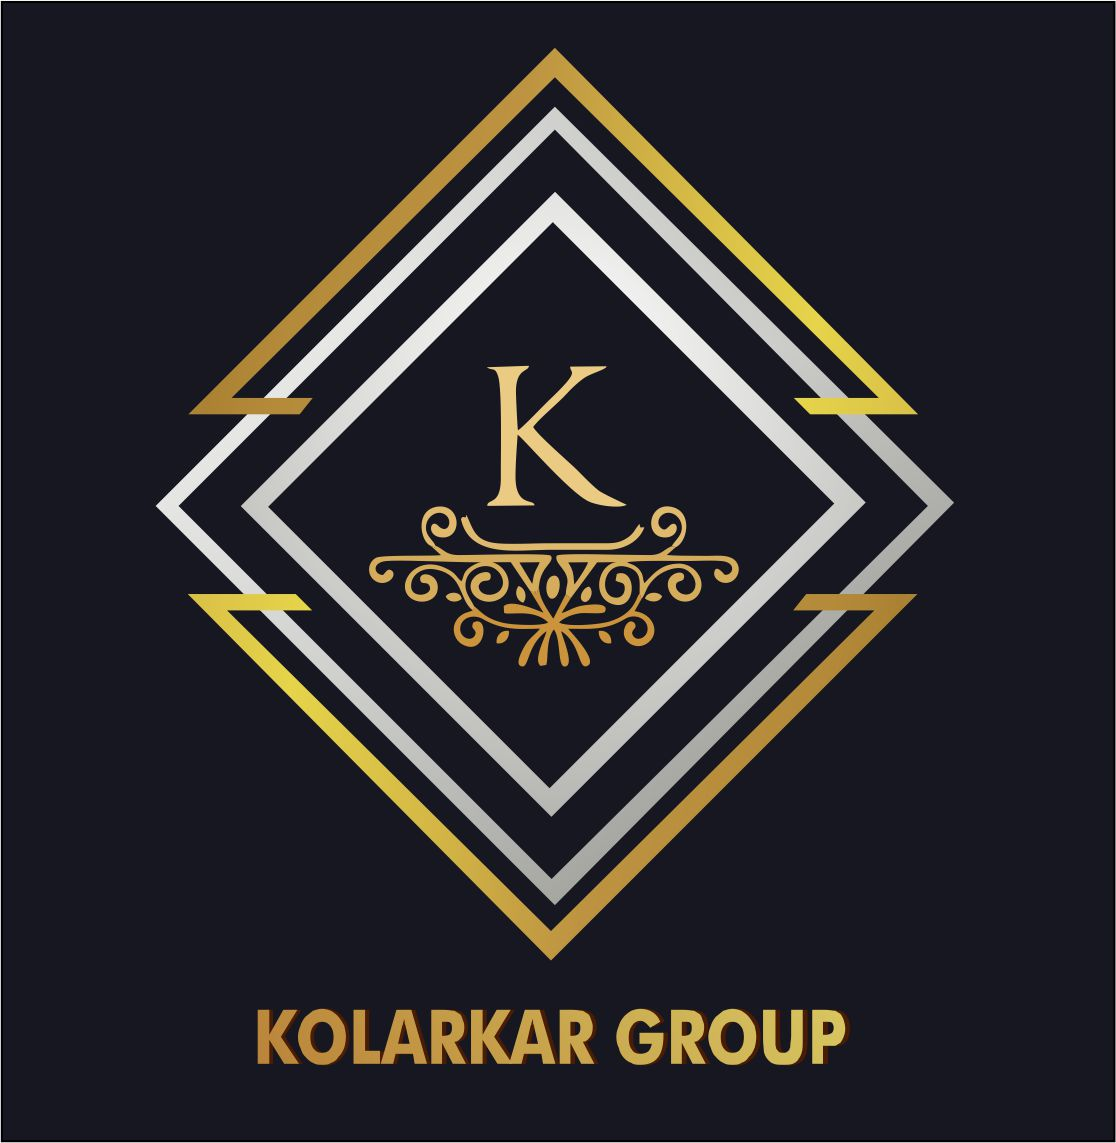 Kolarkar Group